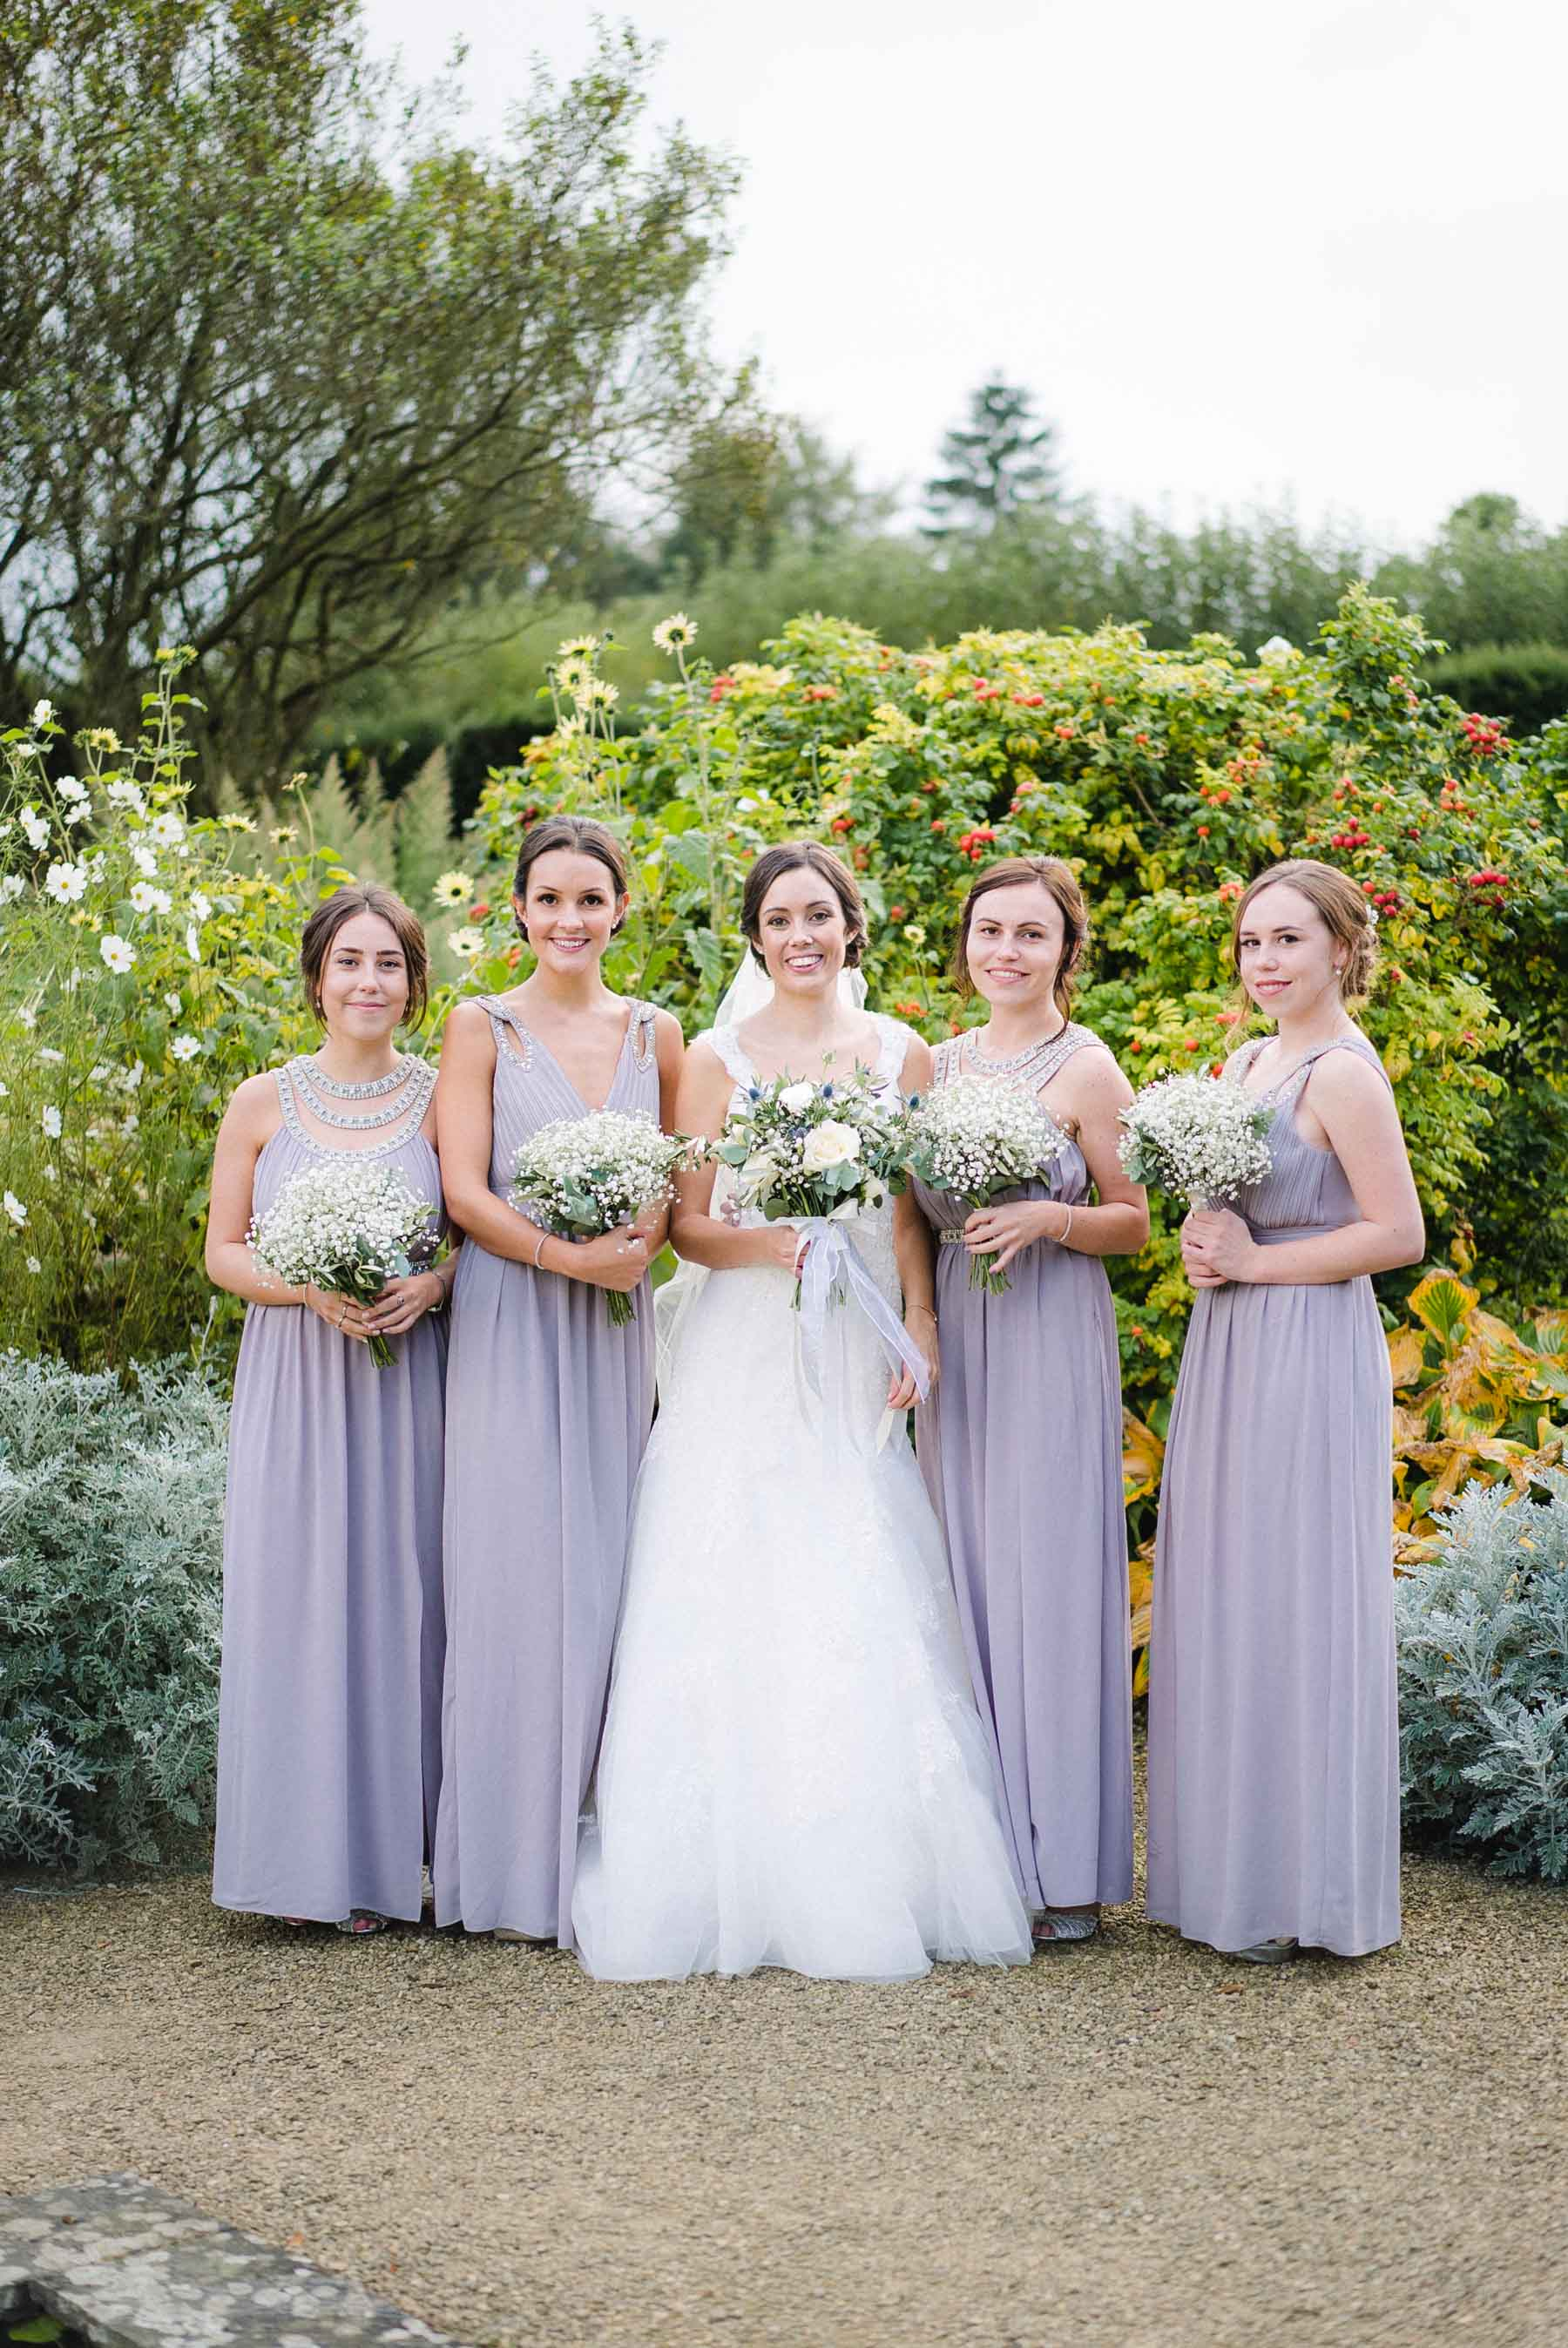 wedding group by Loseley Park Wedding Photographer